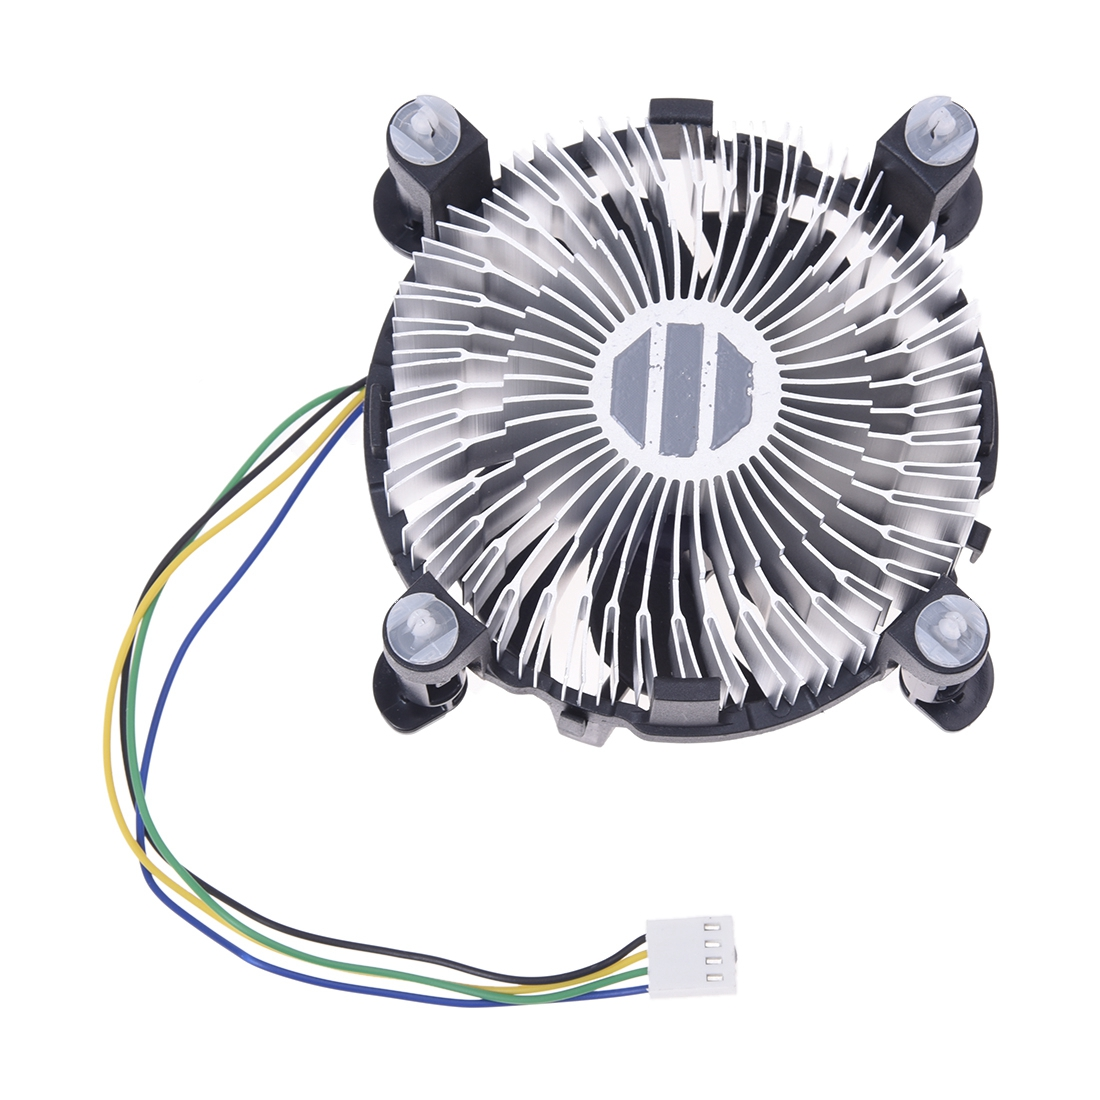 Laptop Cooling Fan Wire Diagram Electrical Wiring Diagrams Dual Electric Pad For Data U2022